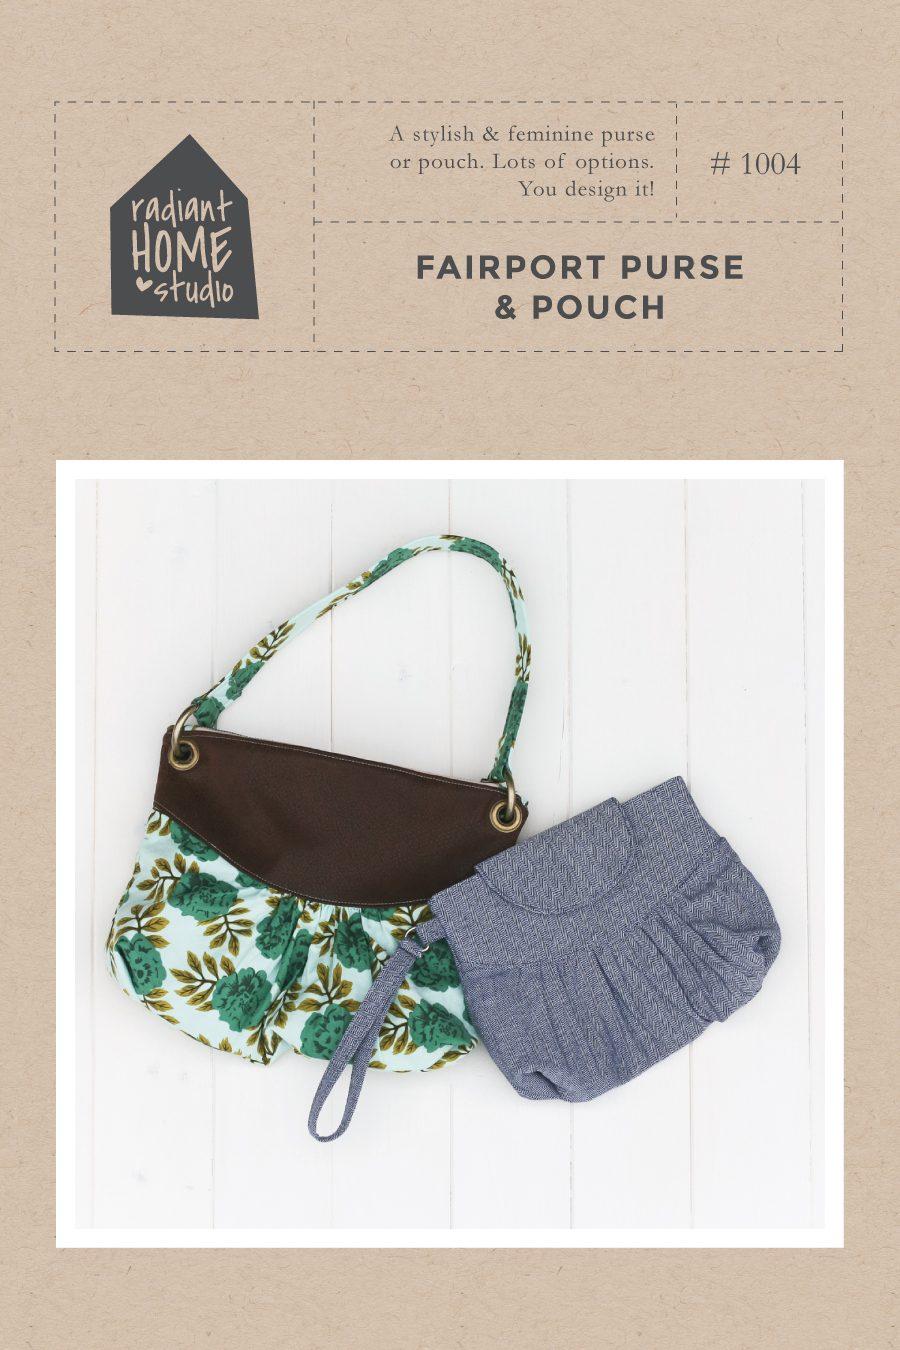 Fairport Purse & Pouch sewing pattern | Radiant Home Studio